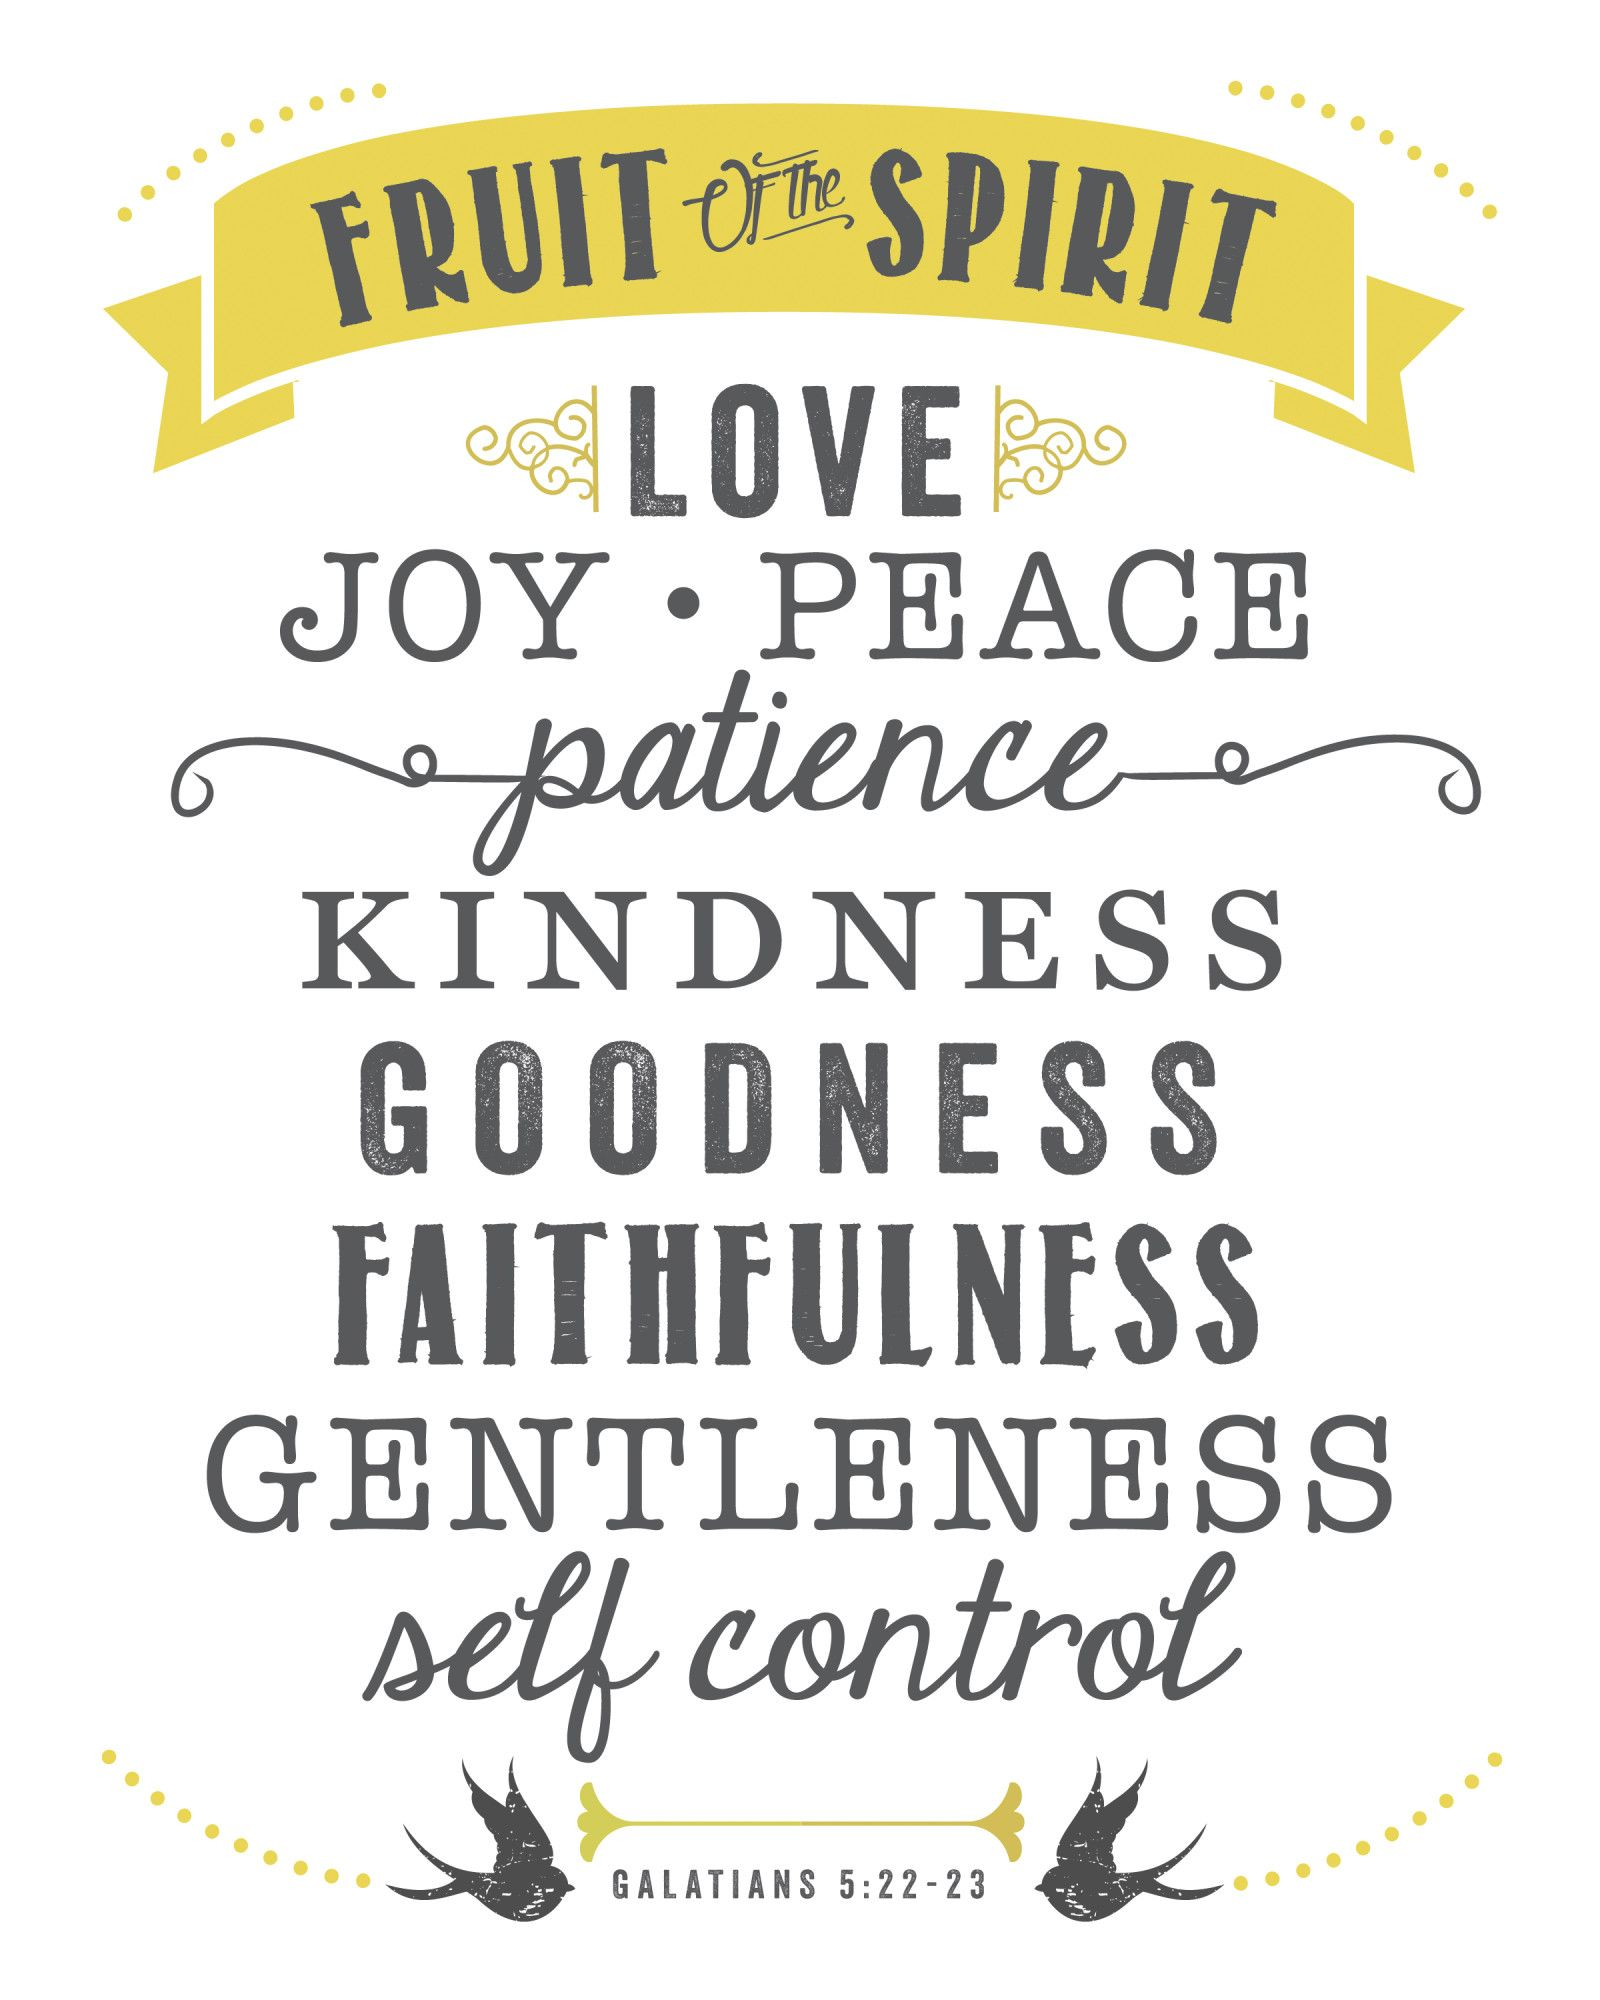 photo about Fruit of the Spirit Printable identify Pin upon Do-it-yourself Plans